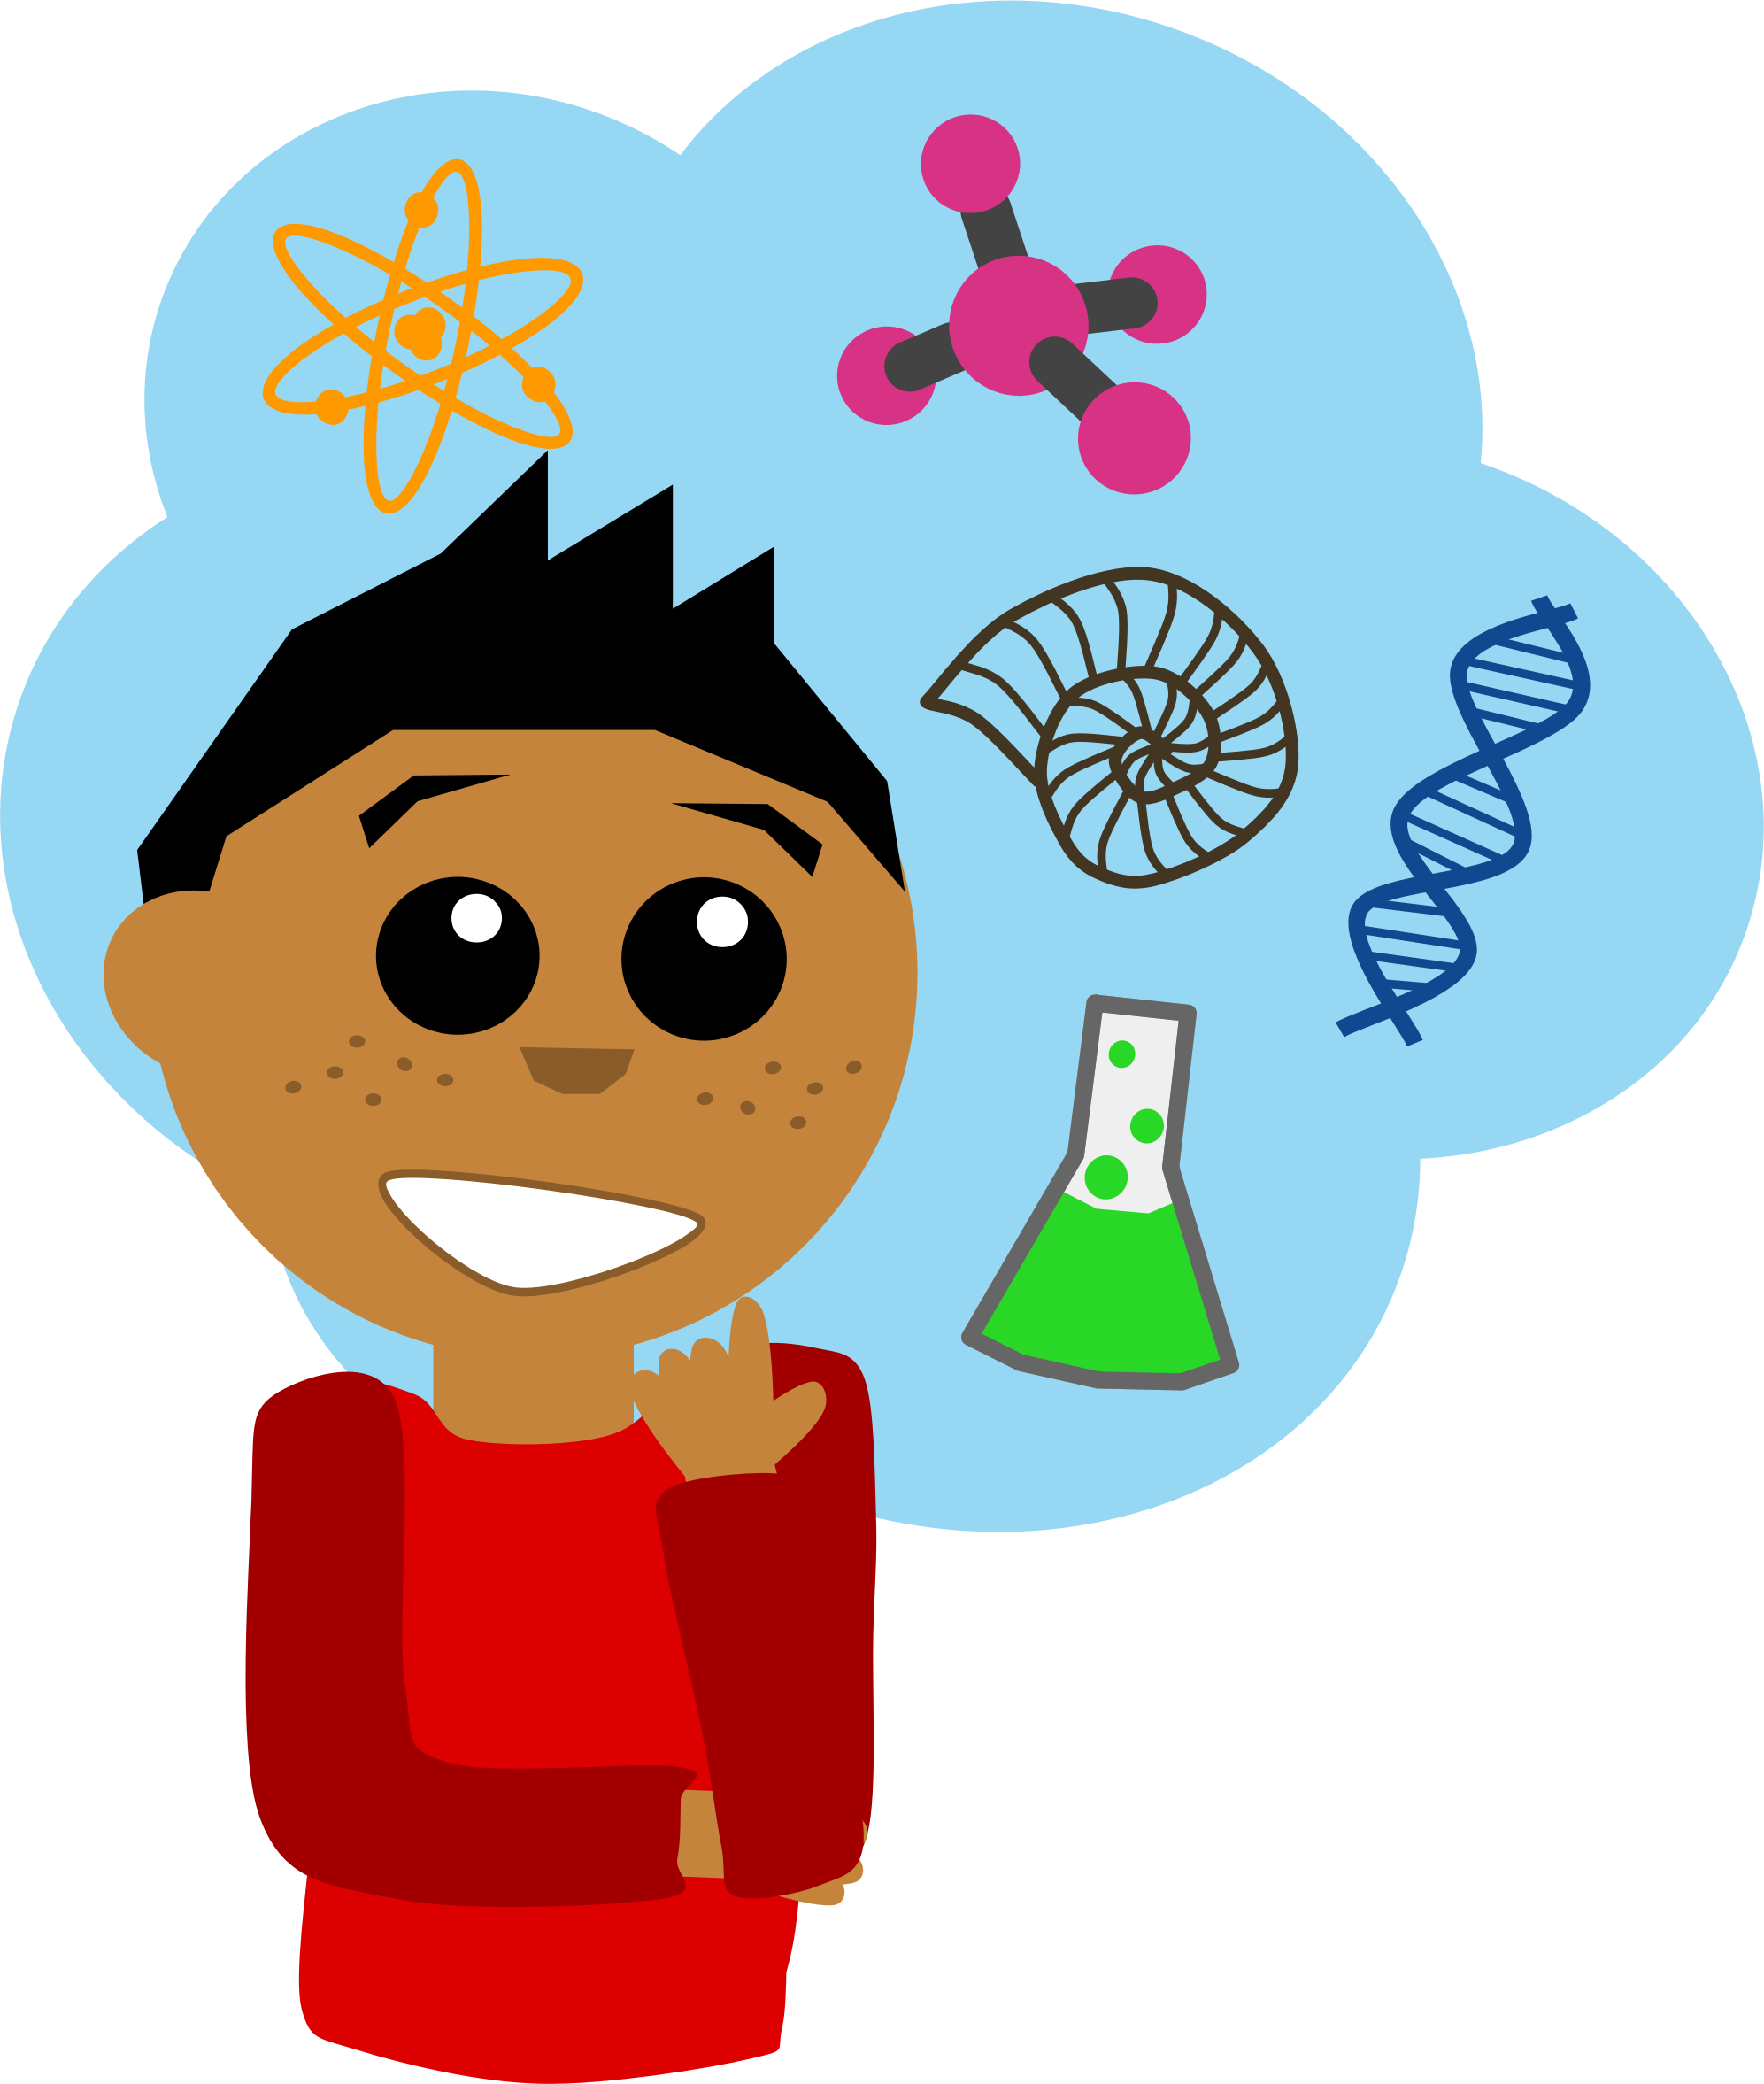 png free library Scientist question free on. Experiment clipart science investigation